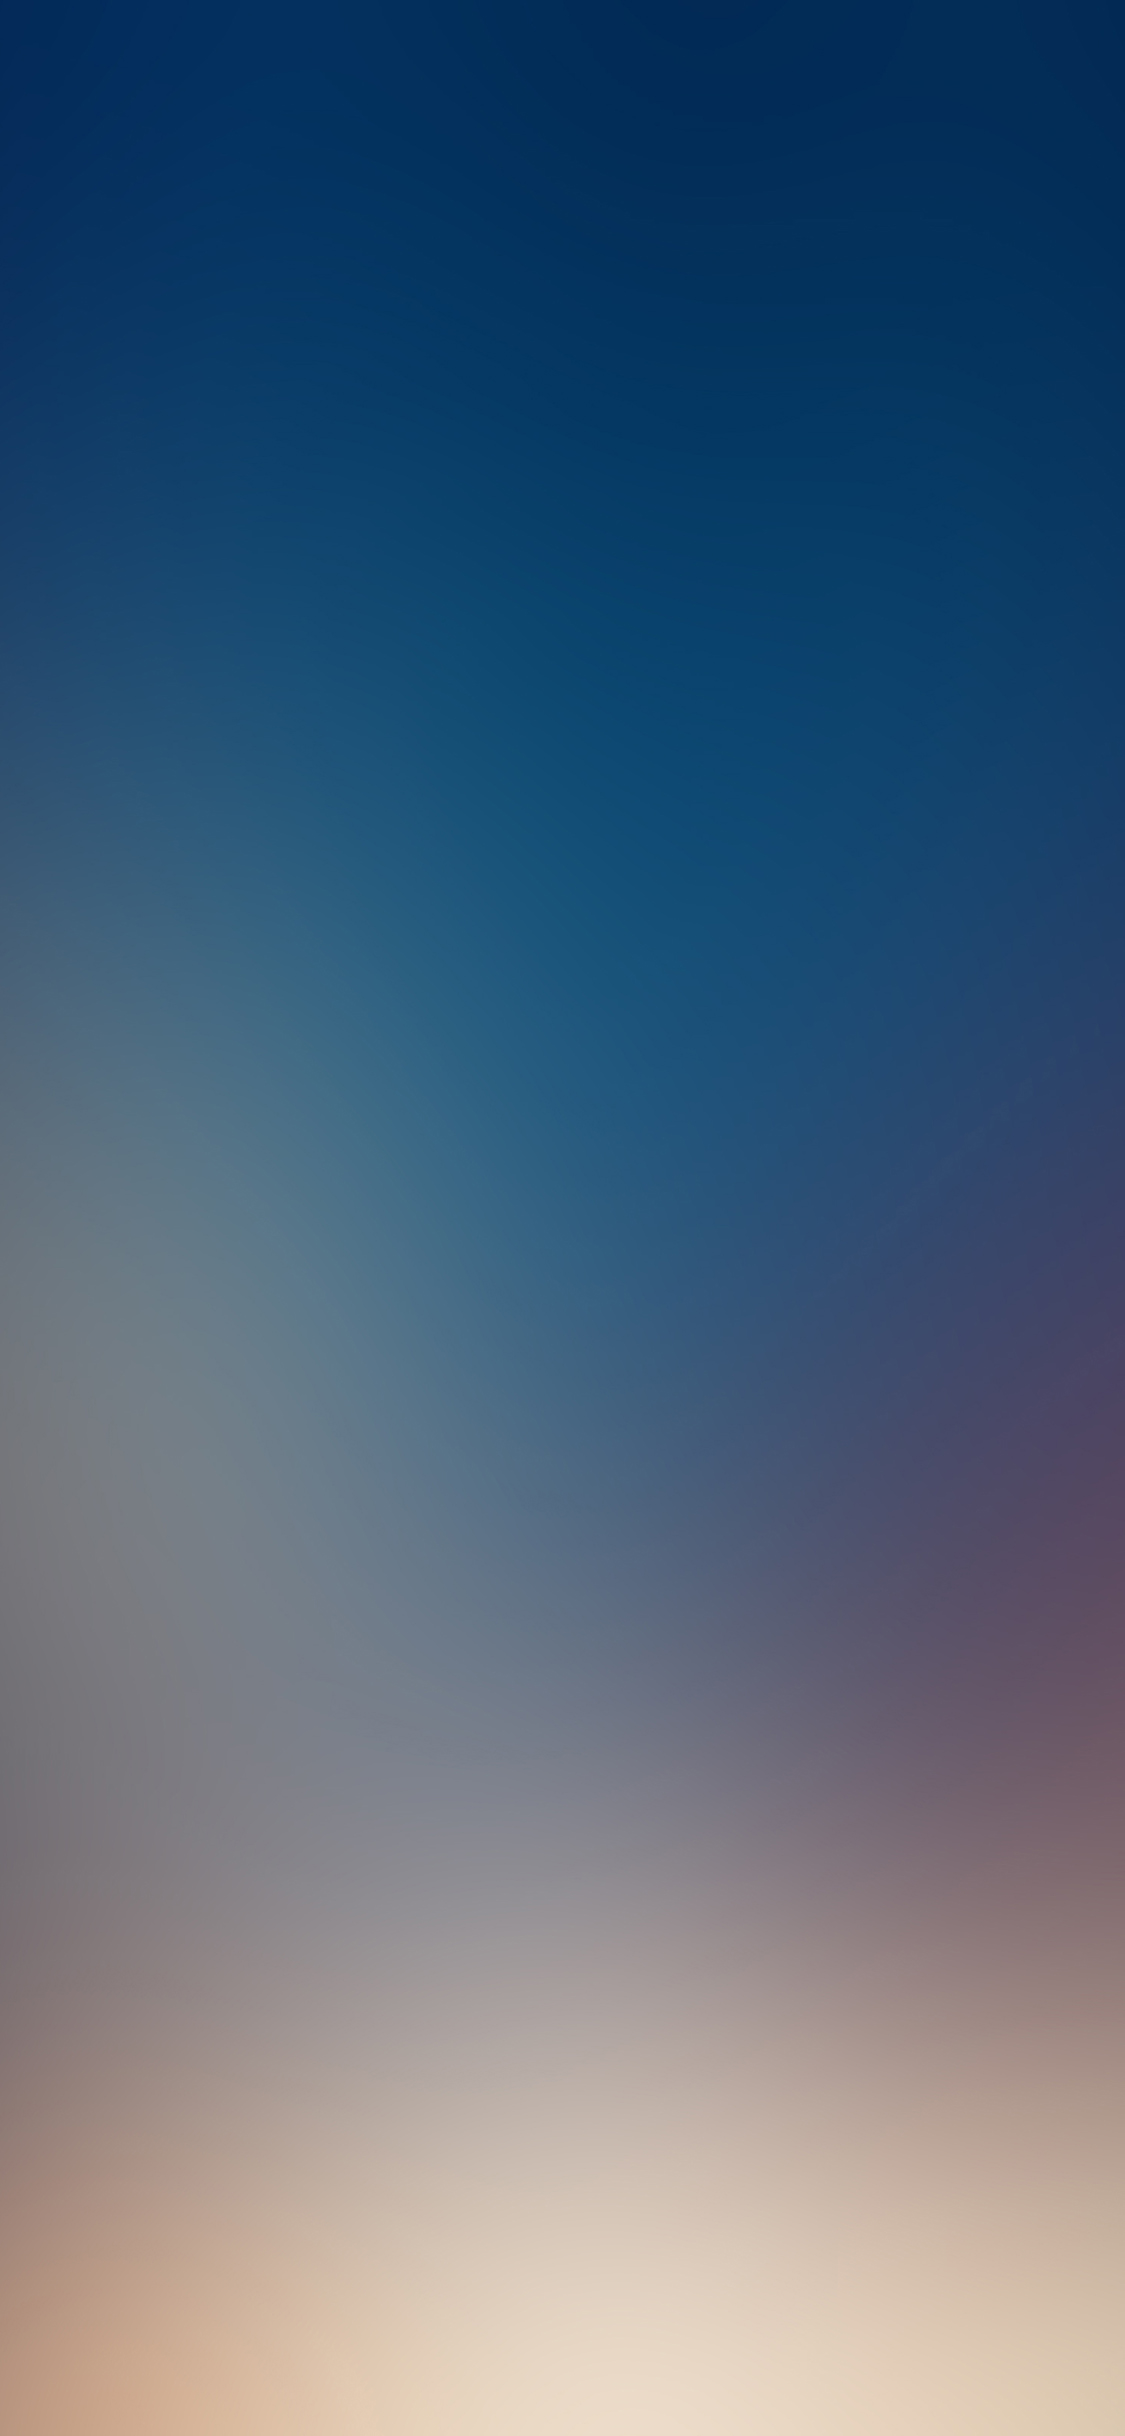 iPhoneXpapers.com-Apple-iPhone-wallpaper-sd50-shiny-sky-sunshine-gradation-blur